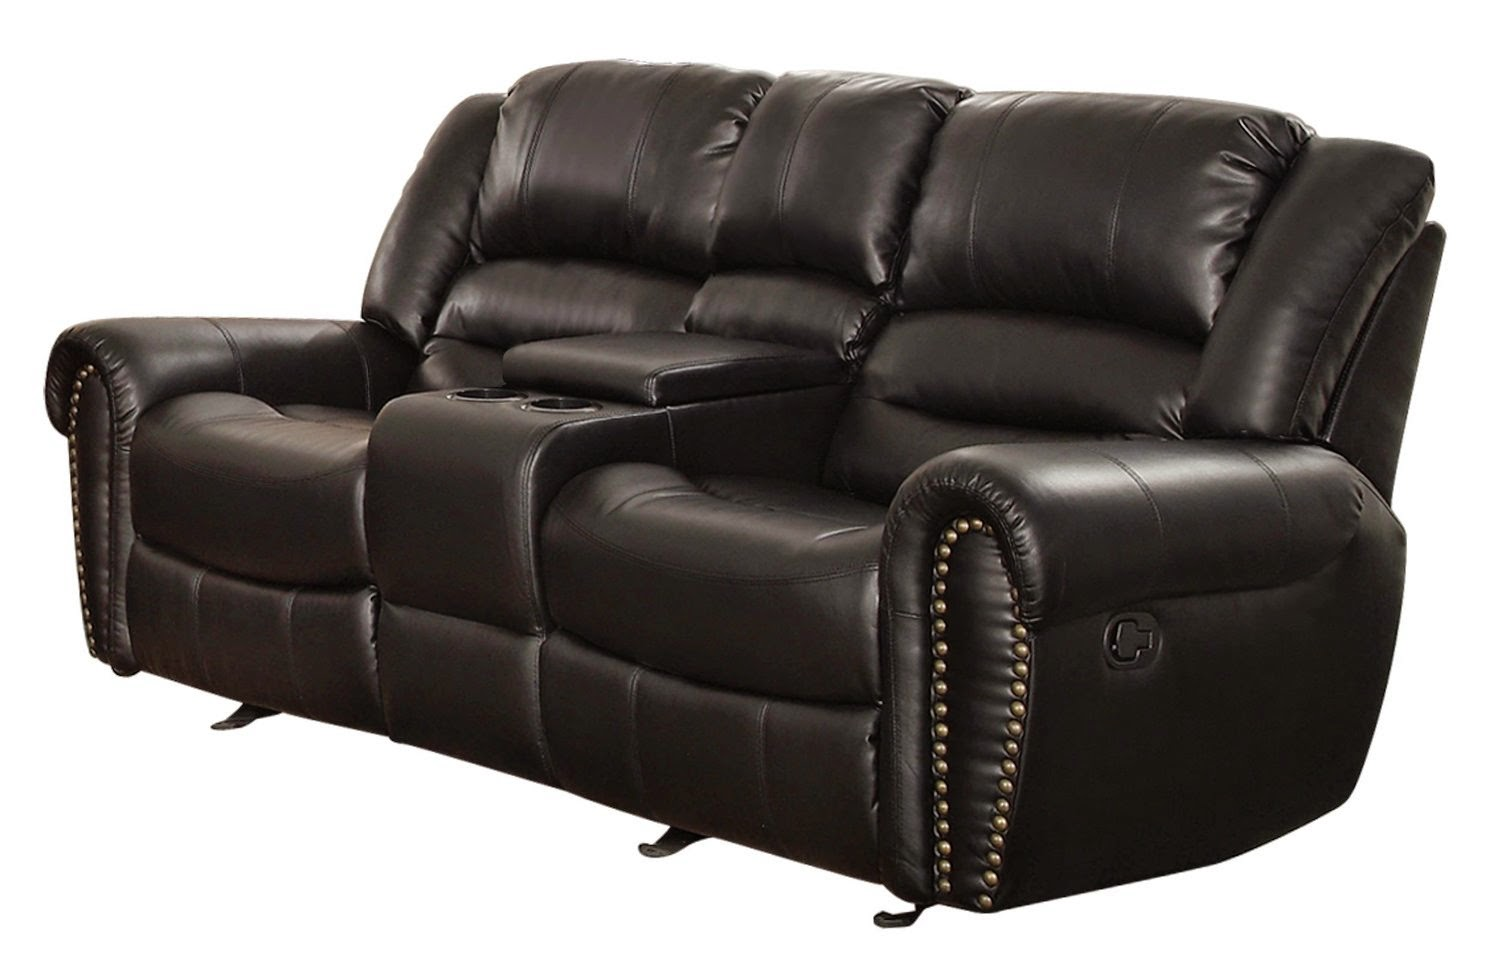 Browse results for recliner 2 seater in our sofas on carousell singapore. Sofa Recliner Reviews: Black Leather 2 Seater Recliner Sofa